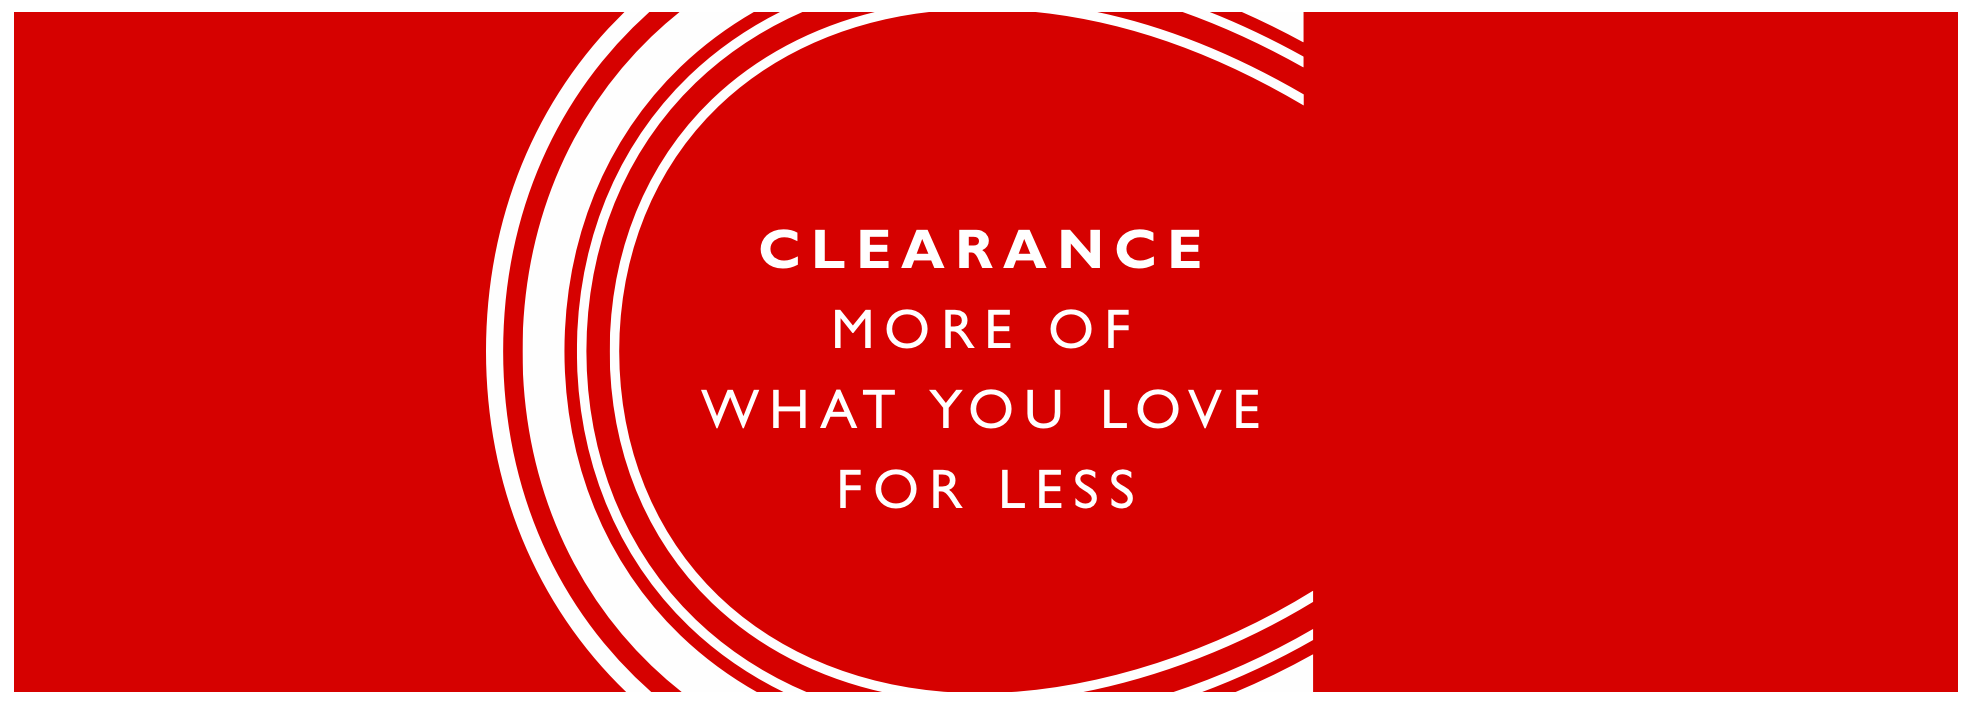 Clearance Offers Find Clearance Bargains John Lewis Partners